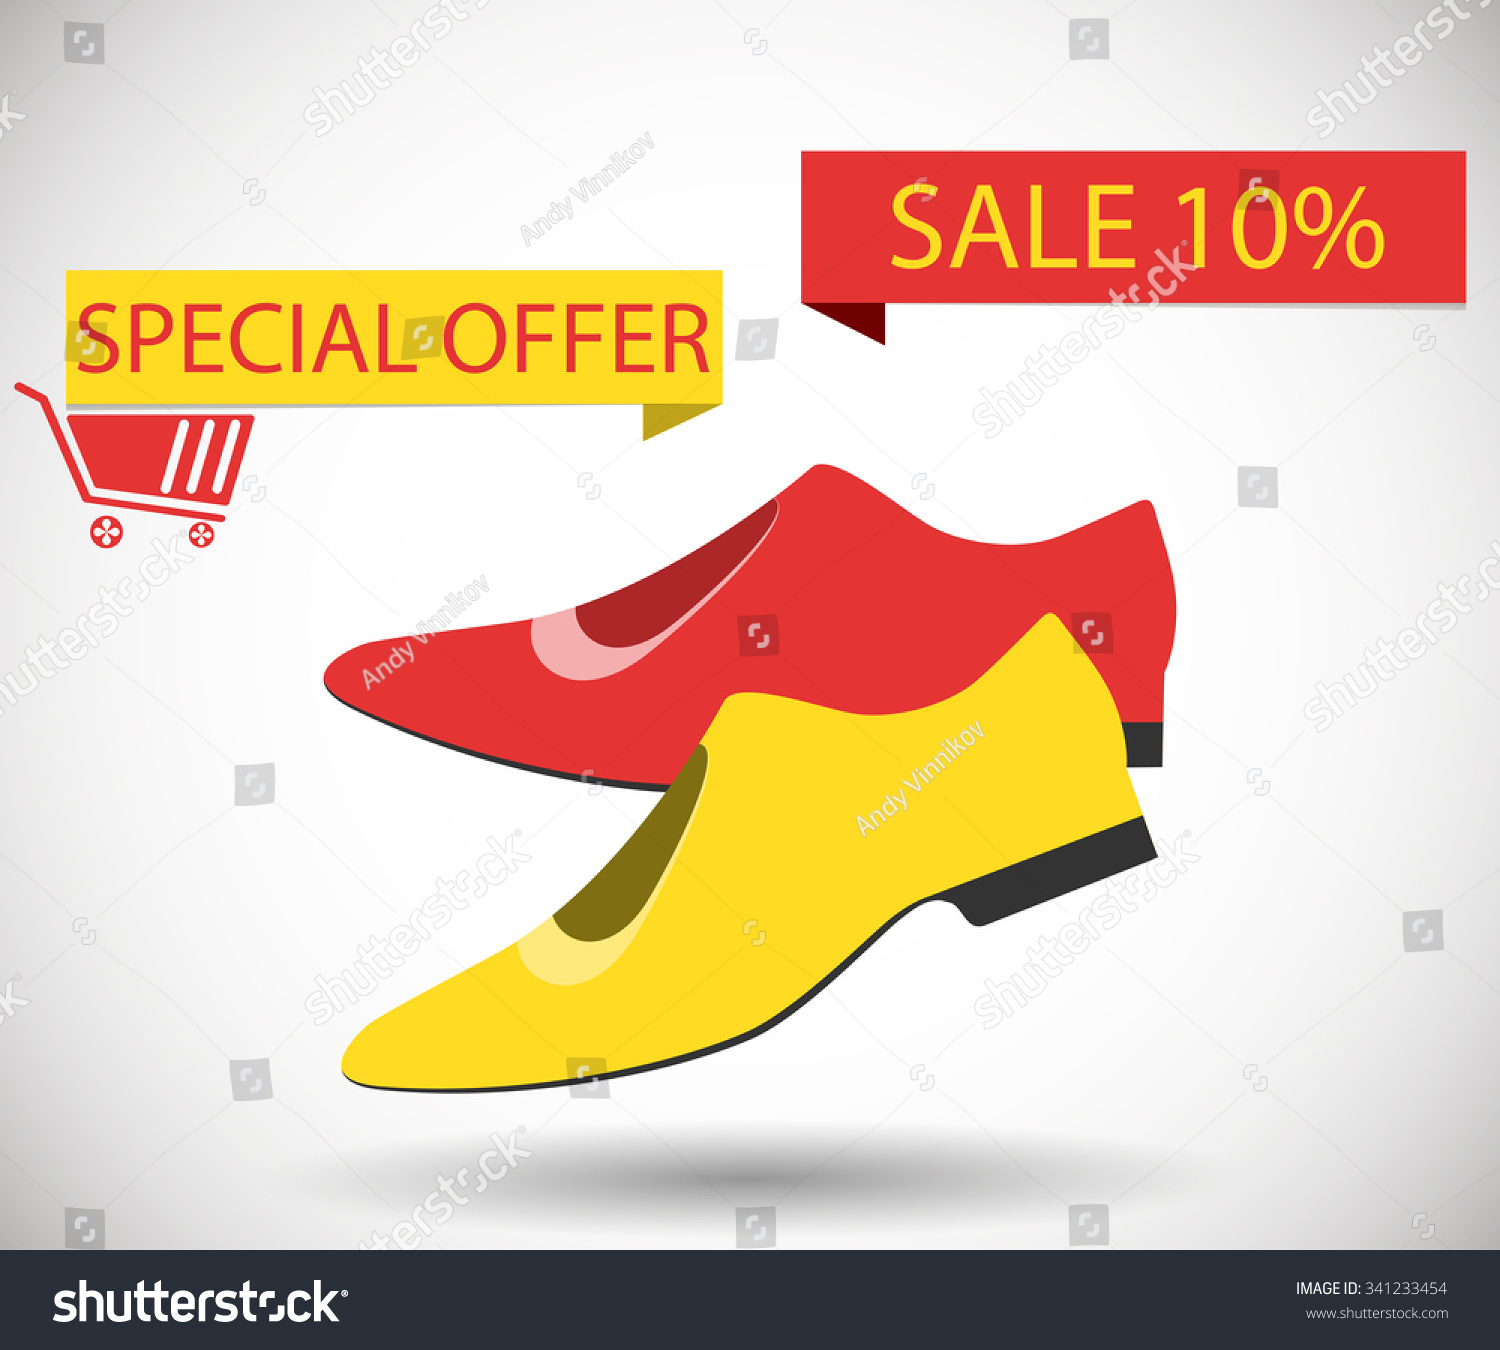 c24633c448ebc9 Sale Shoes Discount 10 Percent Special Stock Vector (Royalty Free ...